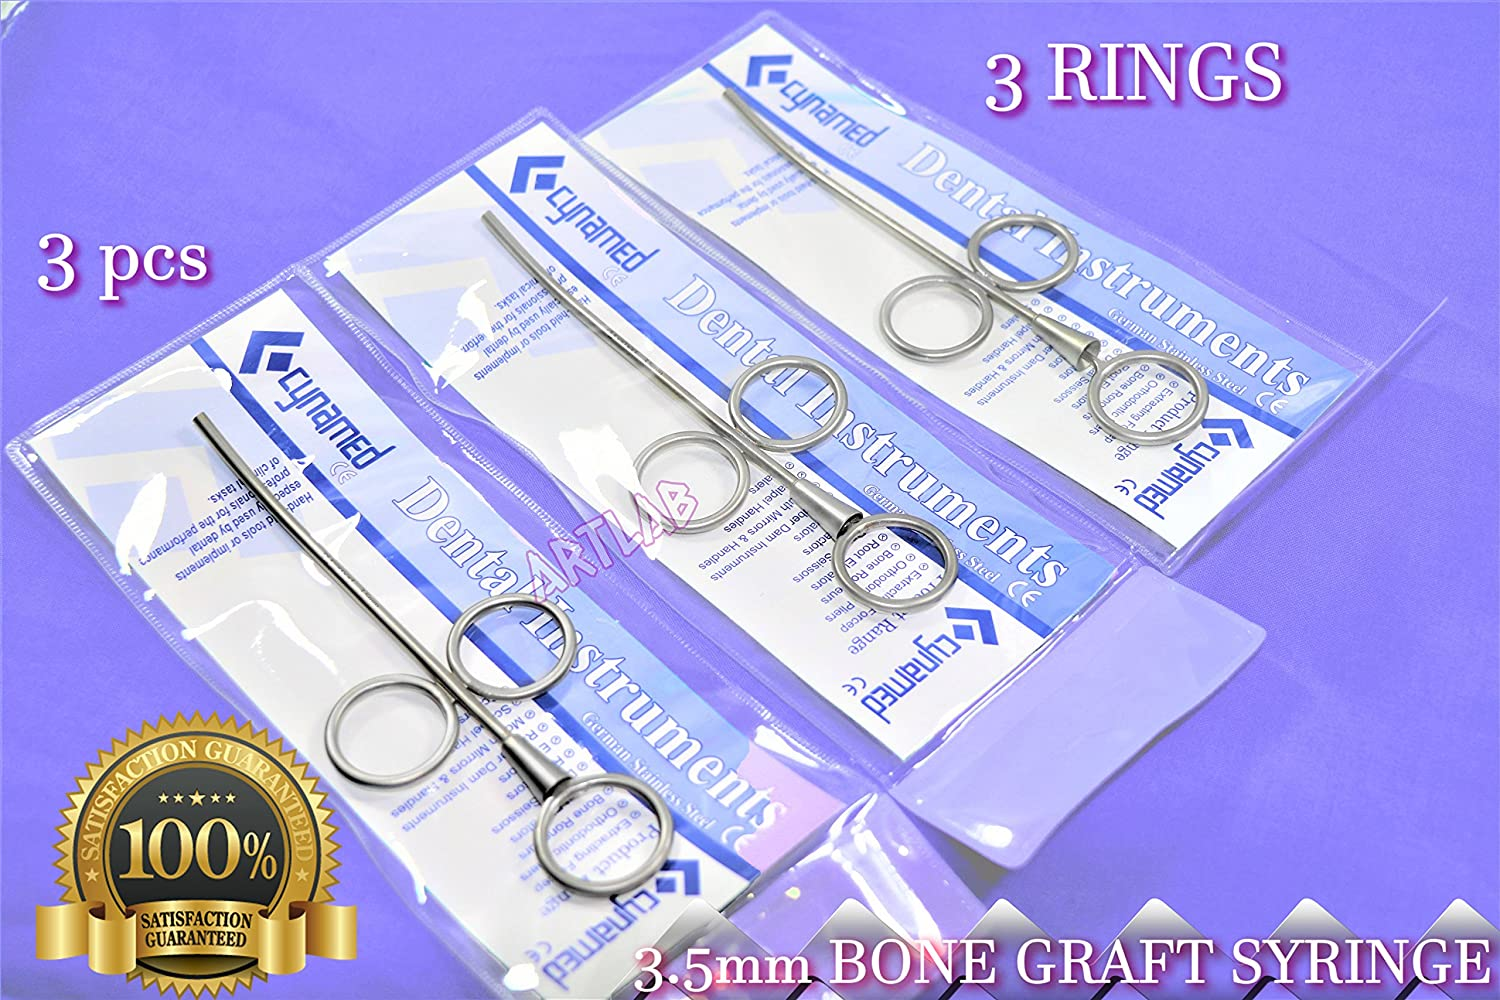 Super special price Premium Curved Bone GRAFT Syringe with 3.5mm 3PCS German OFFicial 3 Rings